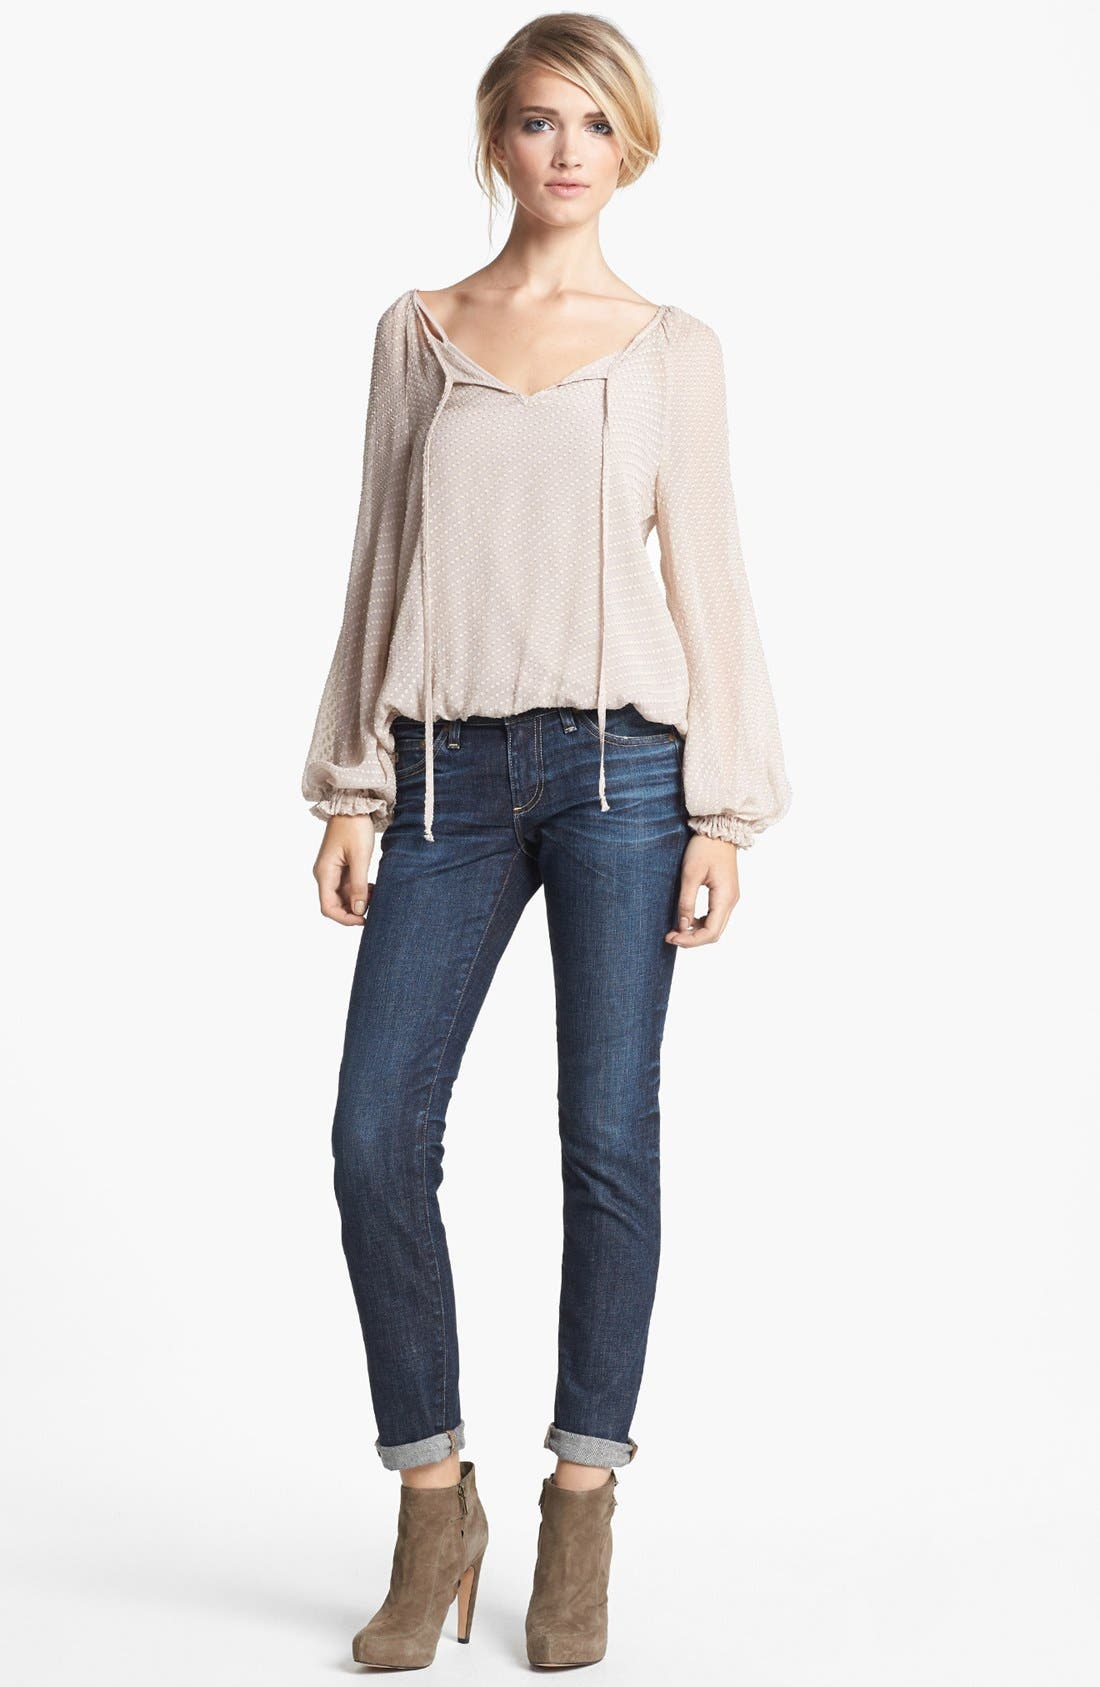 Alternate Image 1 Selected - Ella Moss Top & AG Jeans Relaxed Jeans